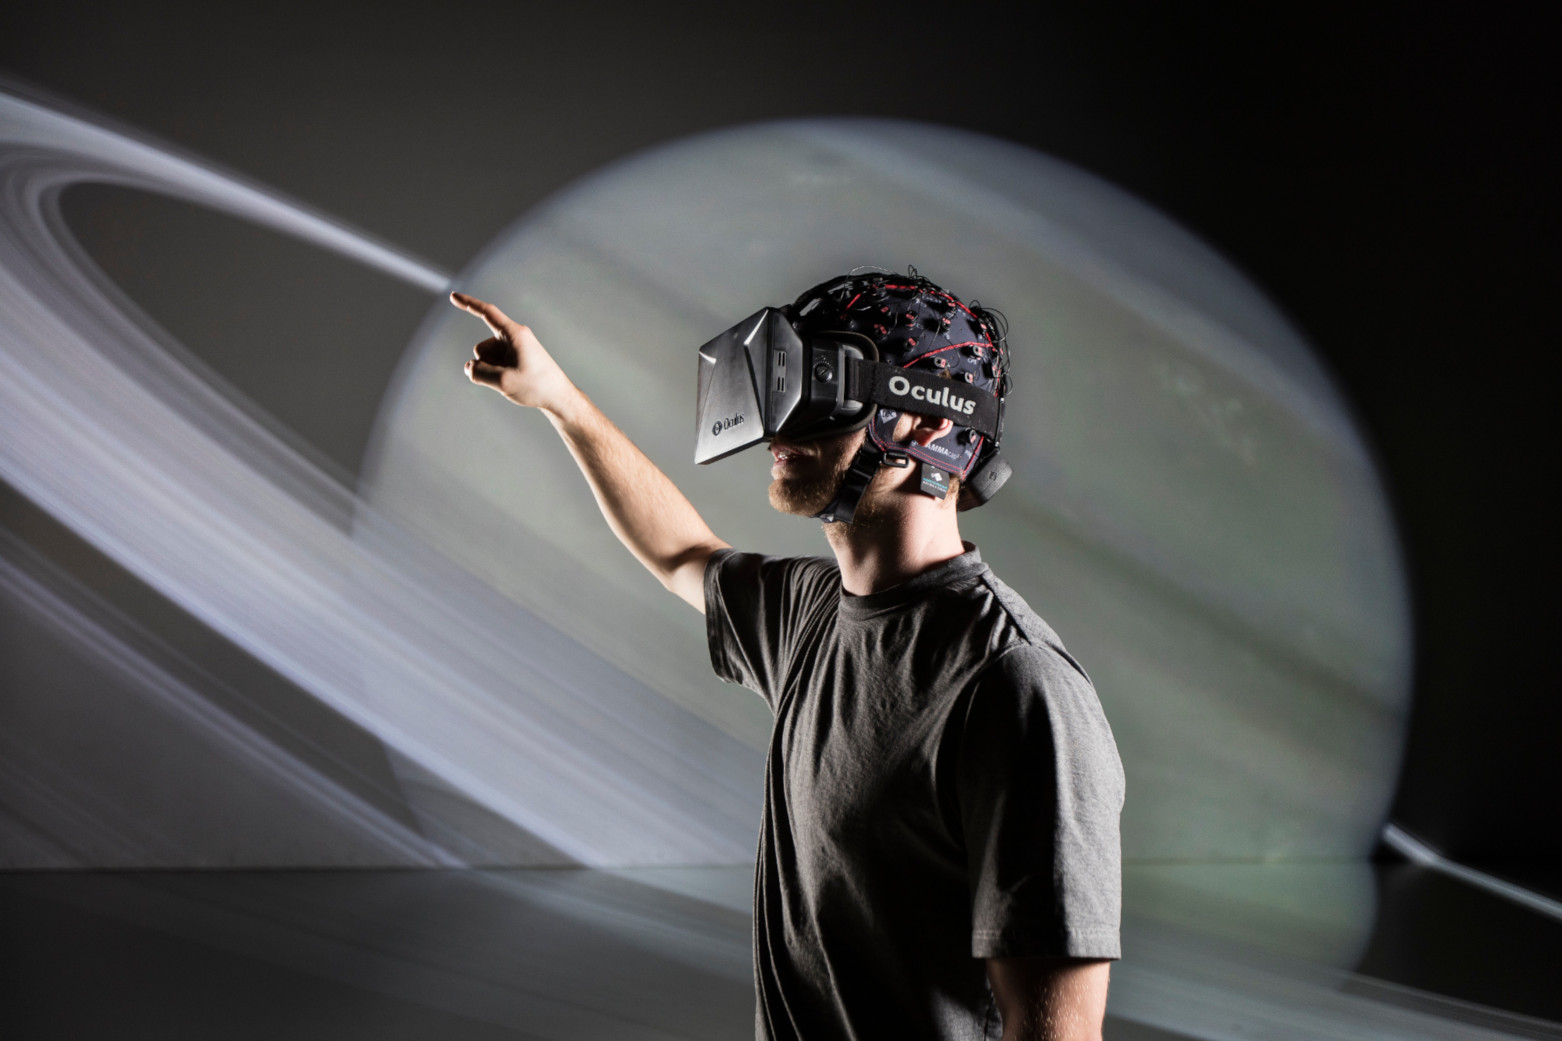 g.Nautilus wireless EEG with Oculus Rift VR